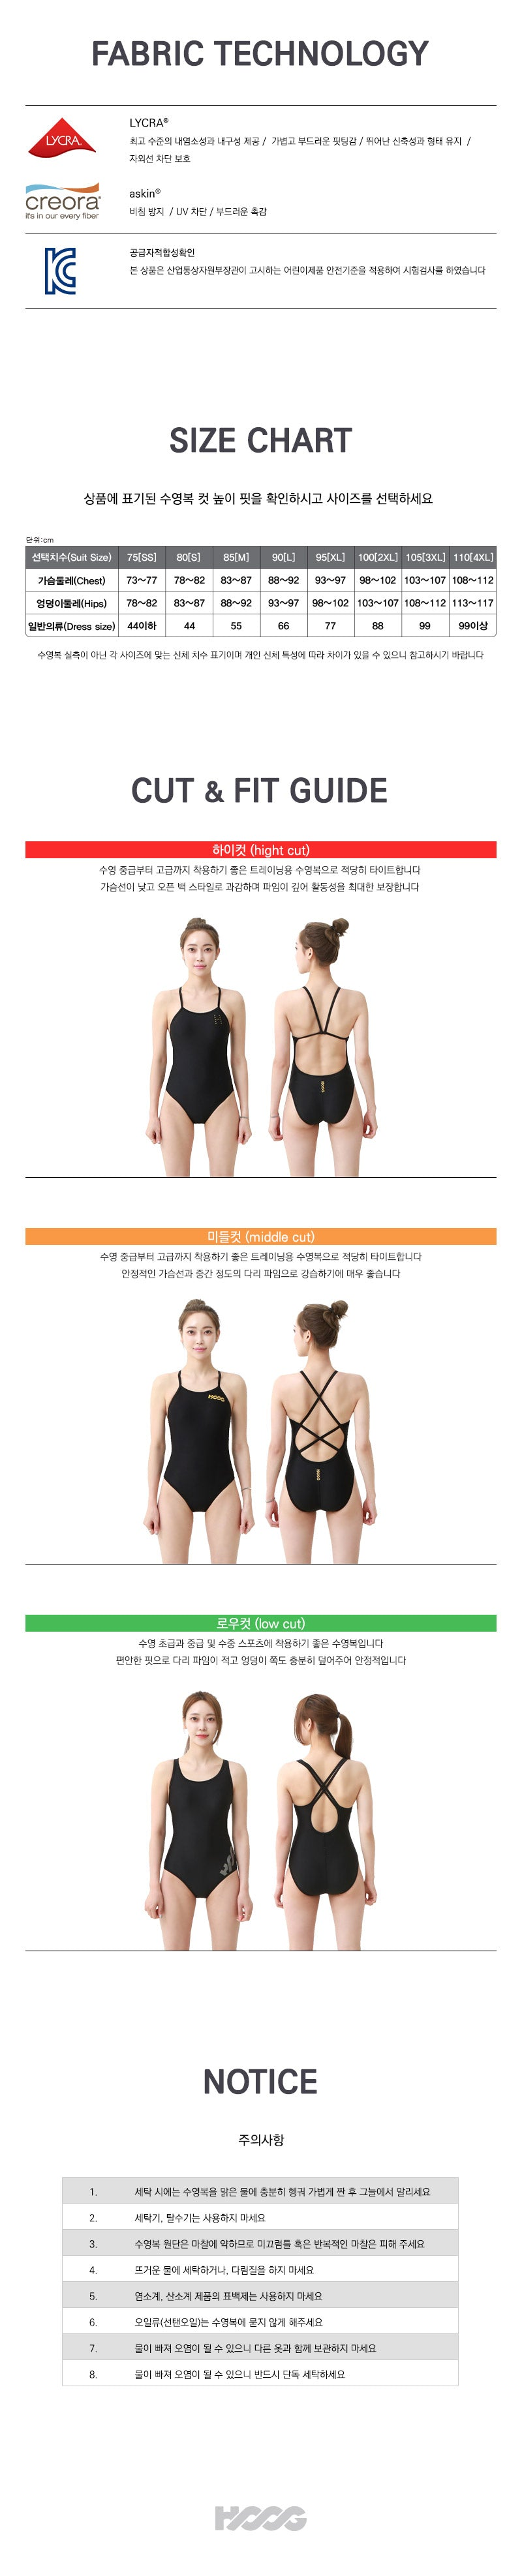 20 times more fade resistant than conventional swimwear